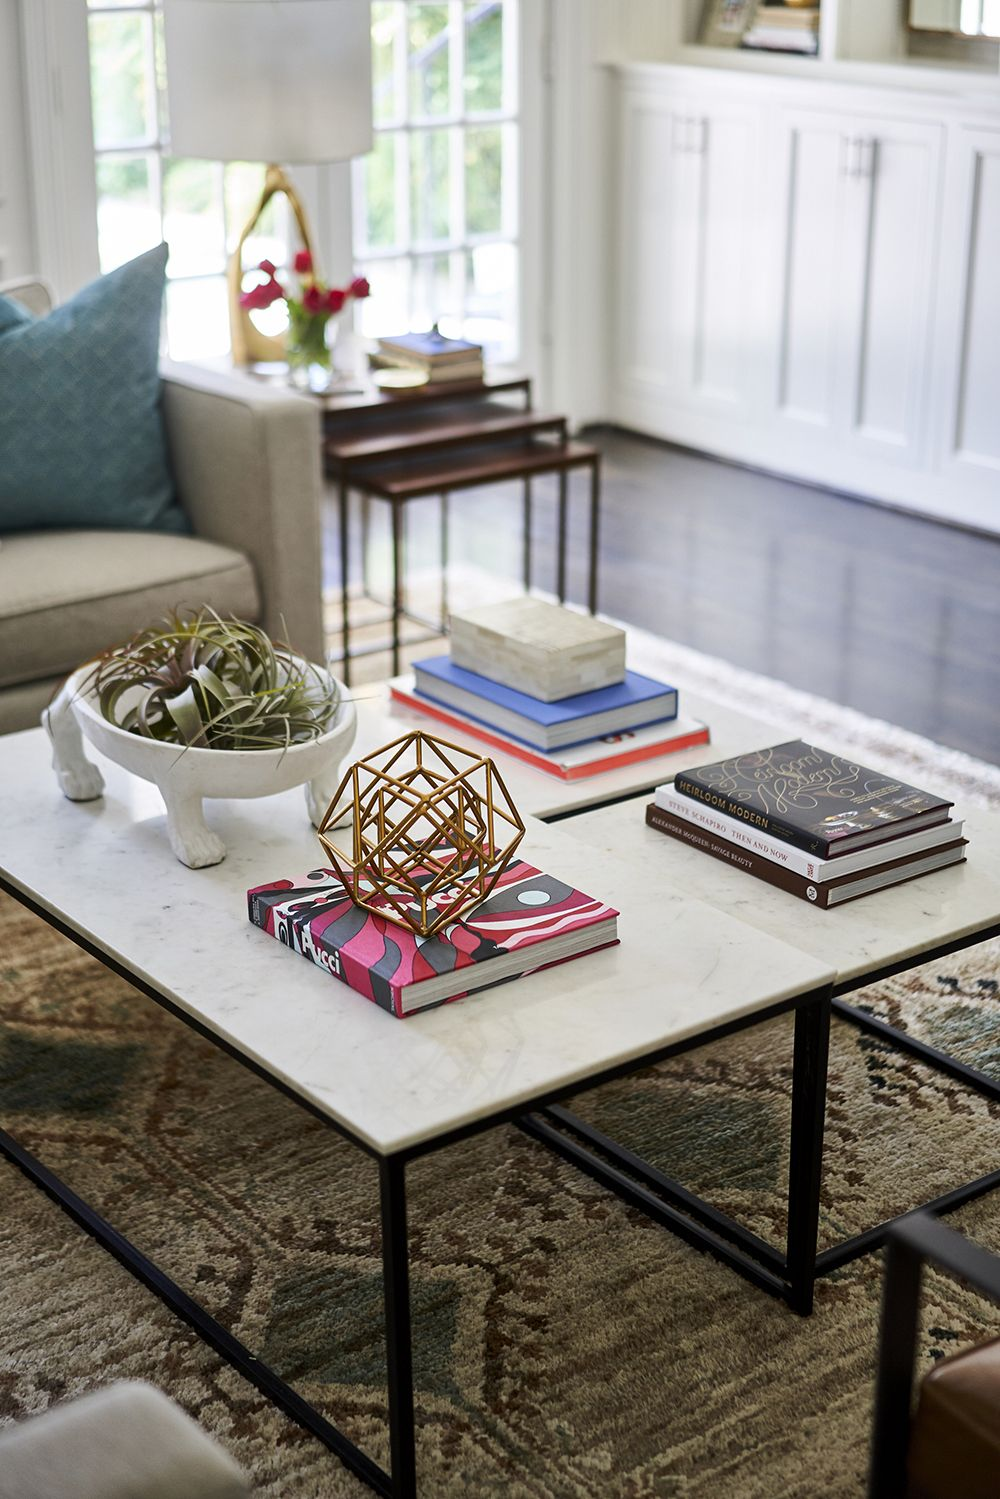 Classic With An Edge Table Decor Living Room Coffee Table Decor Living Room Interior